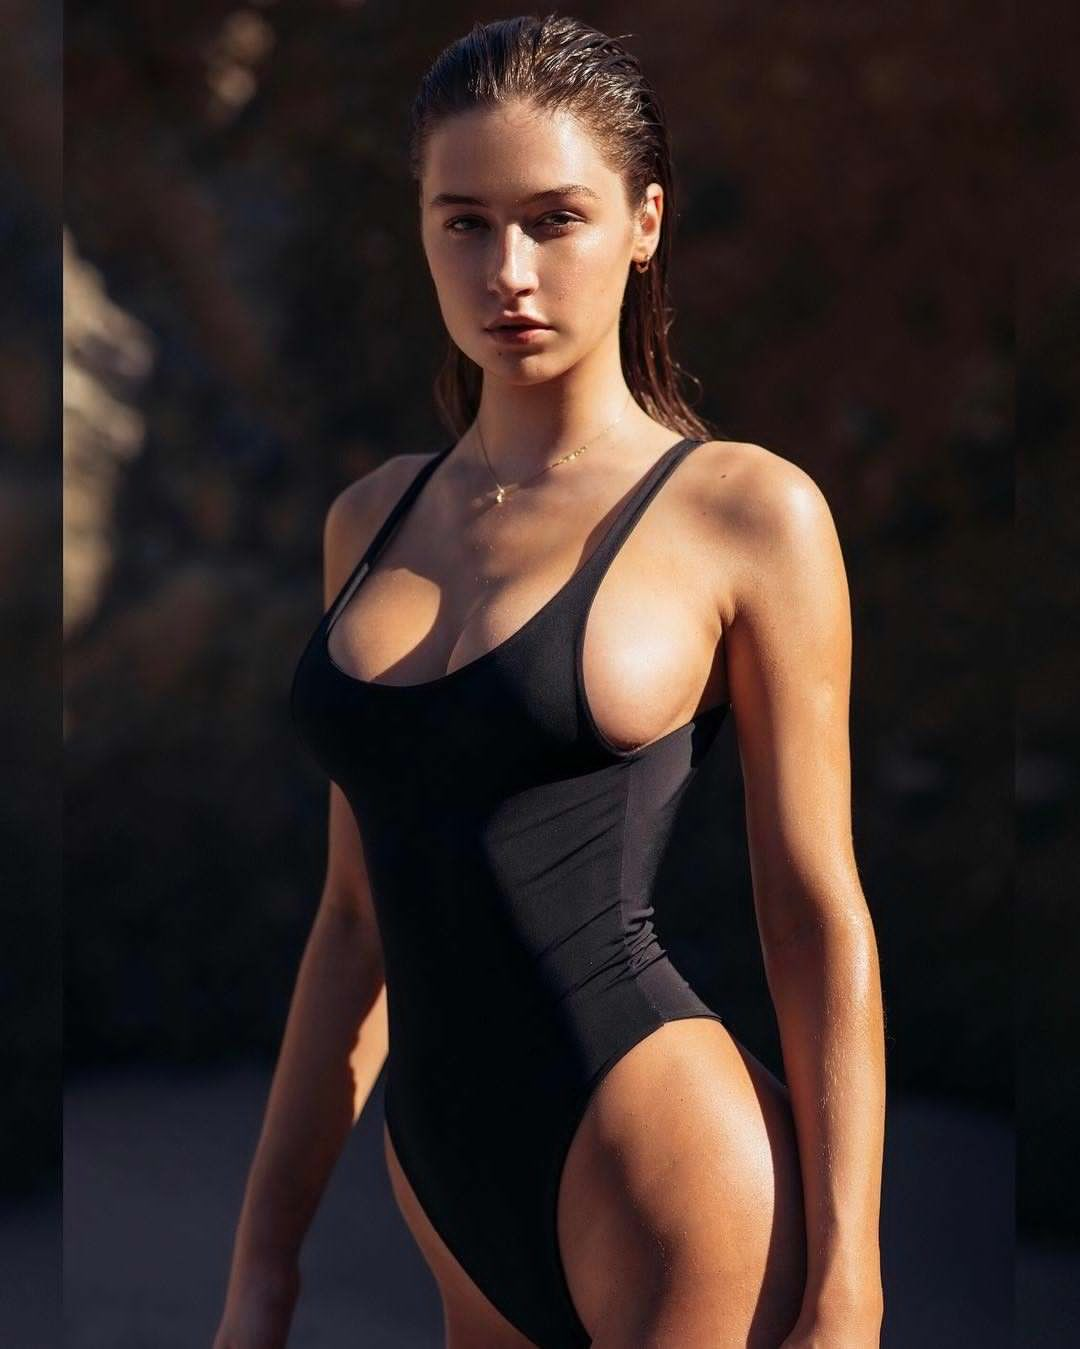 Elsie Hewitt nude (91 photos), Ass, Sideboobs, Selfie, butt 2020